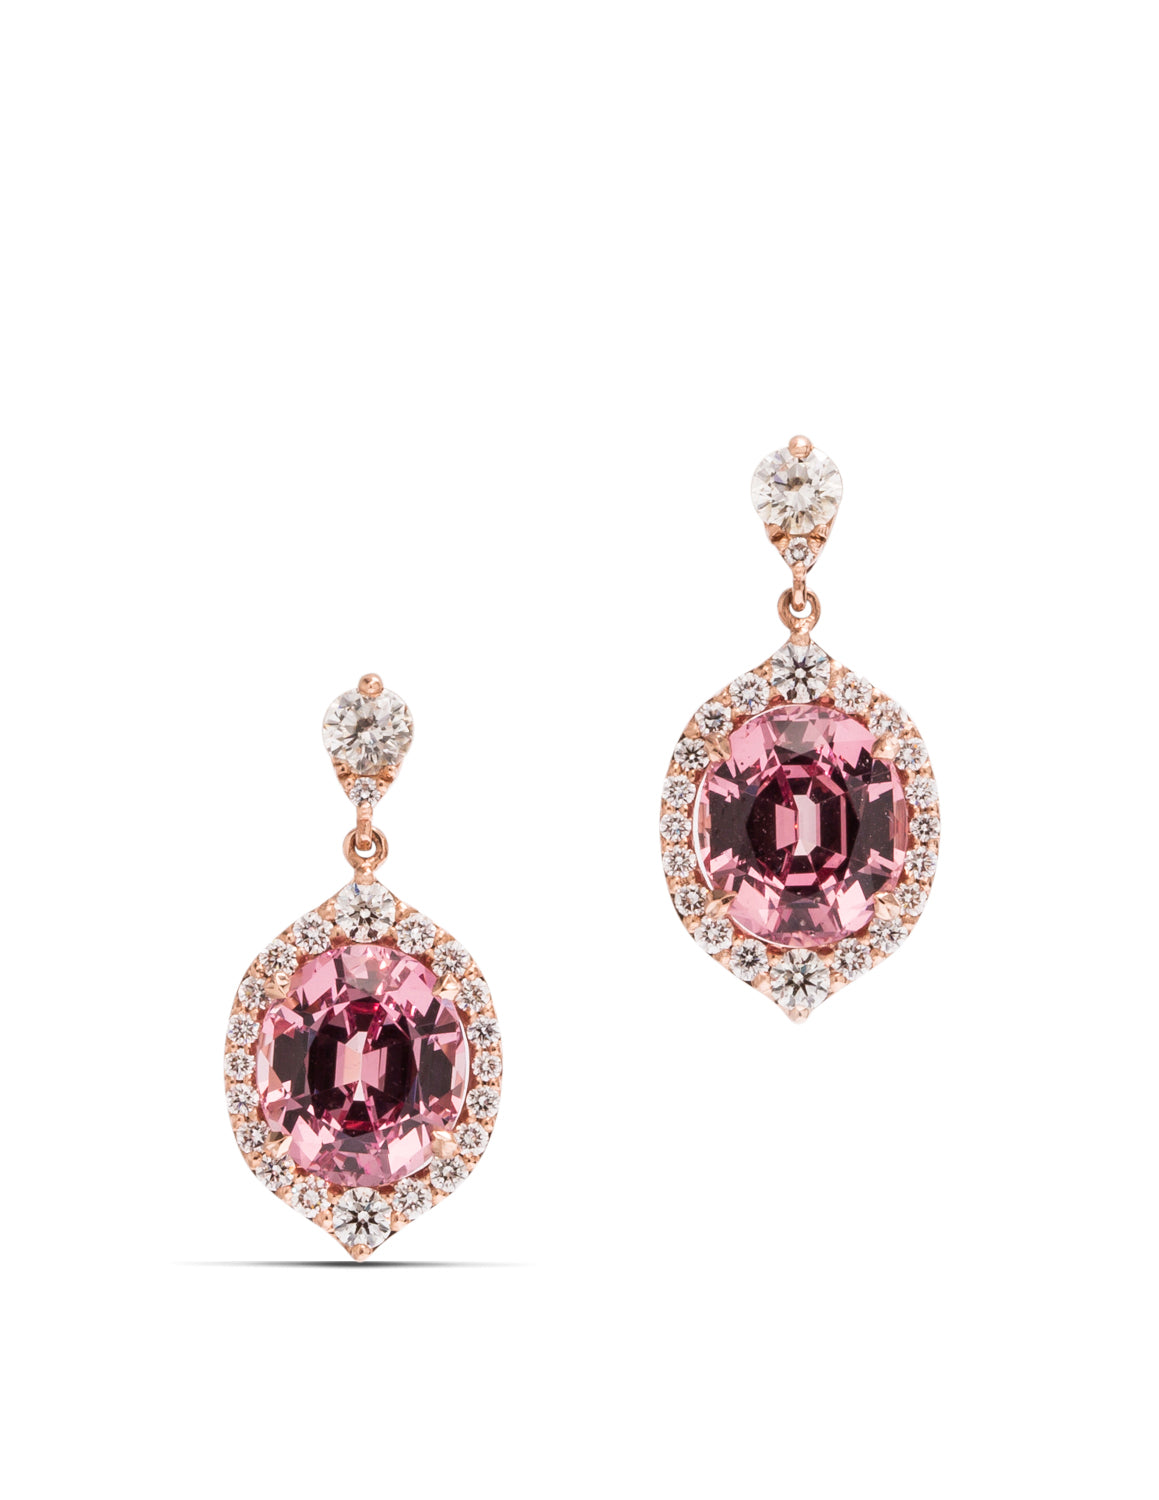 Lotus Garnet and Diamond Earrings - Charles Koll Jewellers